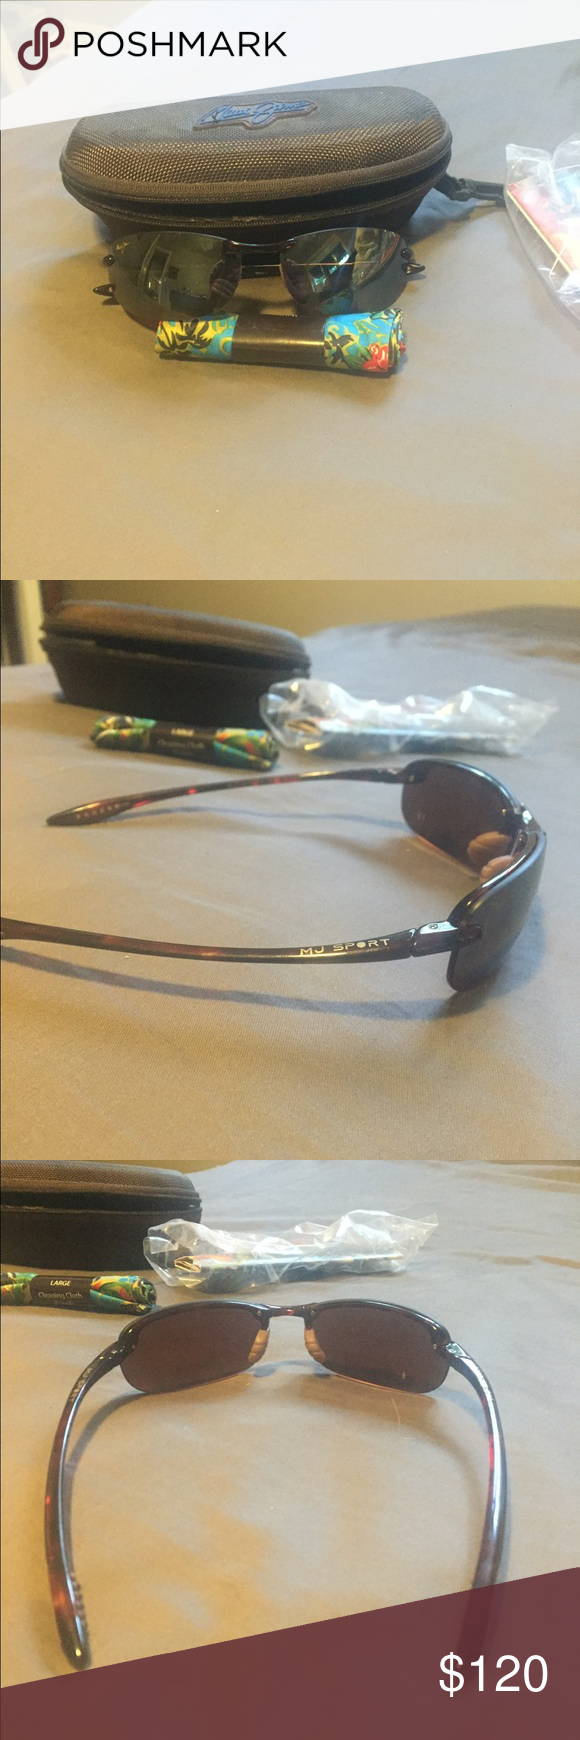 4c3e6ba5a559 Case & cleaning towel included as well. Tortoise frame & HCL Bronze Lens. Style  number 405-10 Maui Jim Accessories Sunglasses